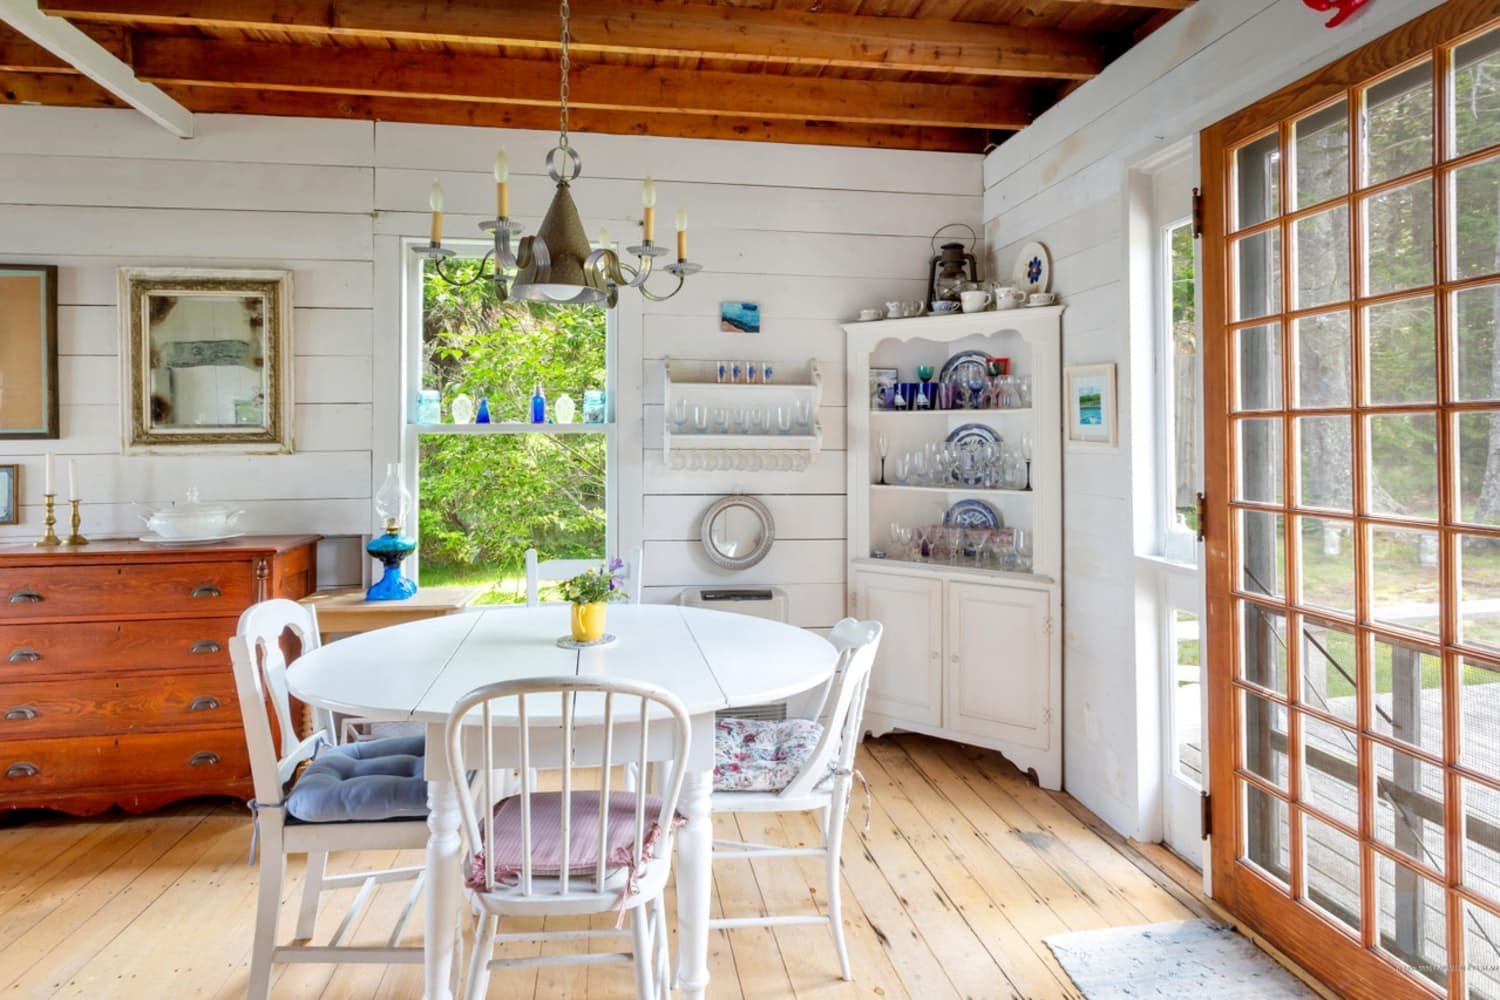 Look Inside: The Cutest Summer Cottage You've Ever Seen Is for Sale in Maine